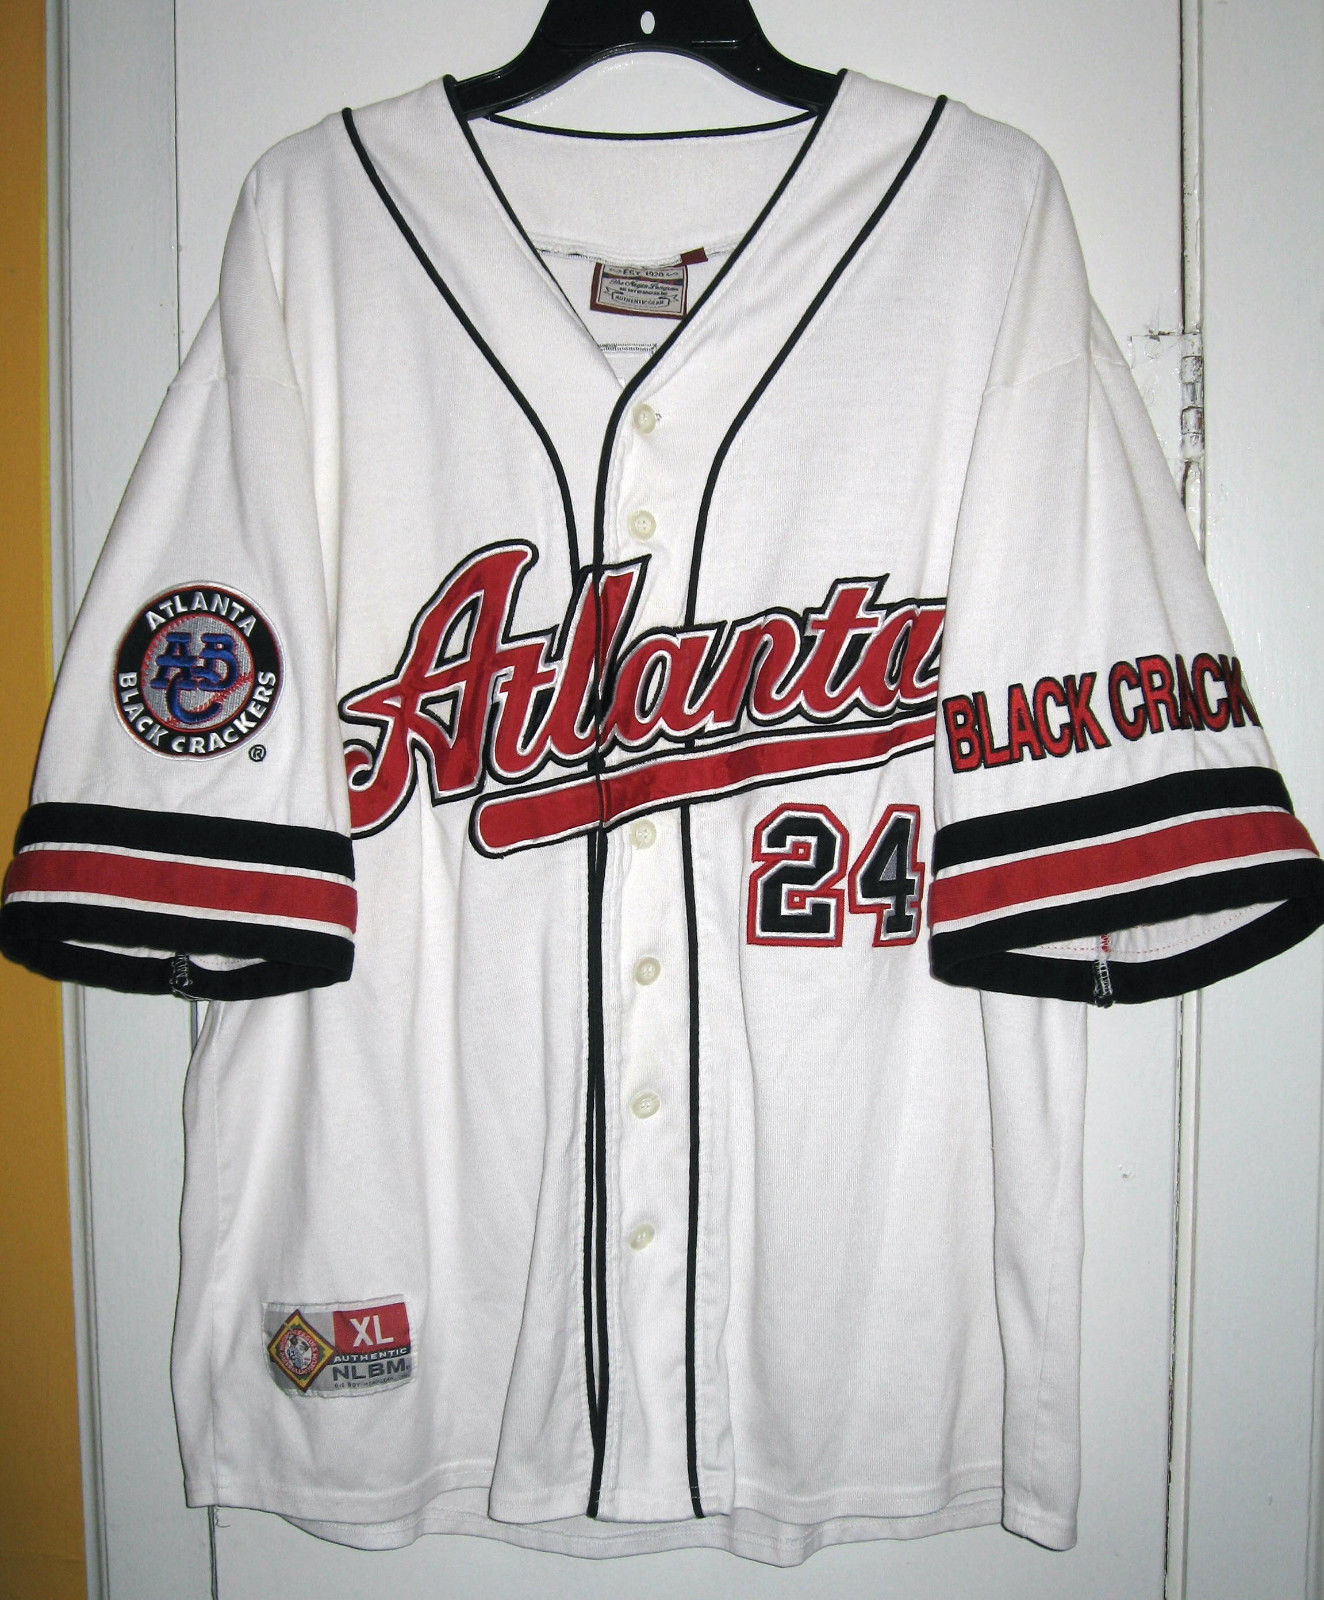 atlanta_black_crackers_nlb_jersey